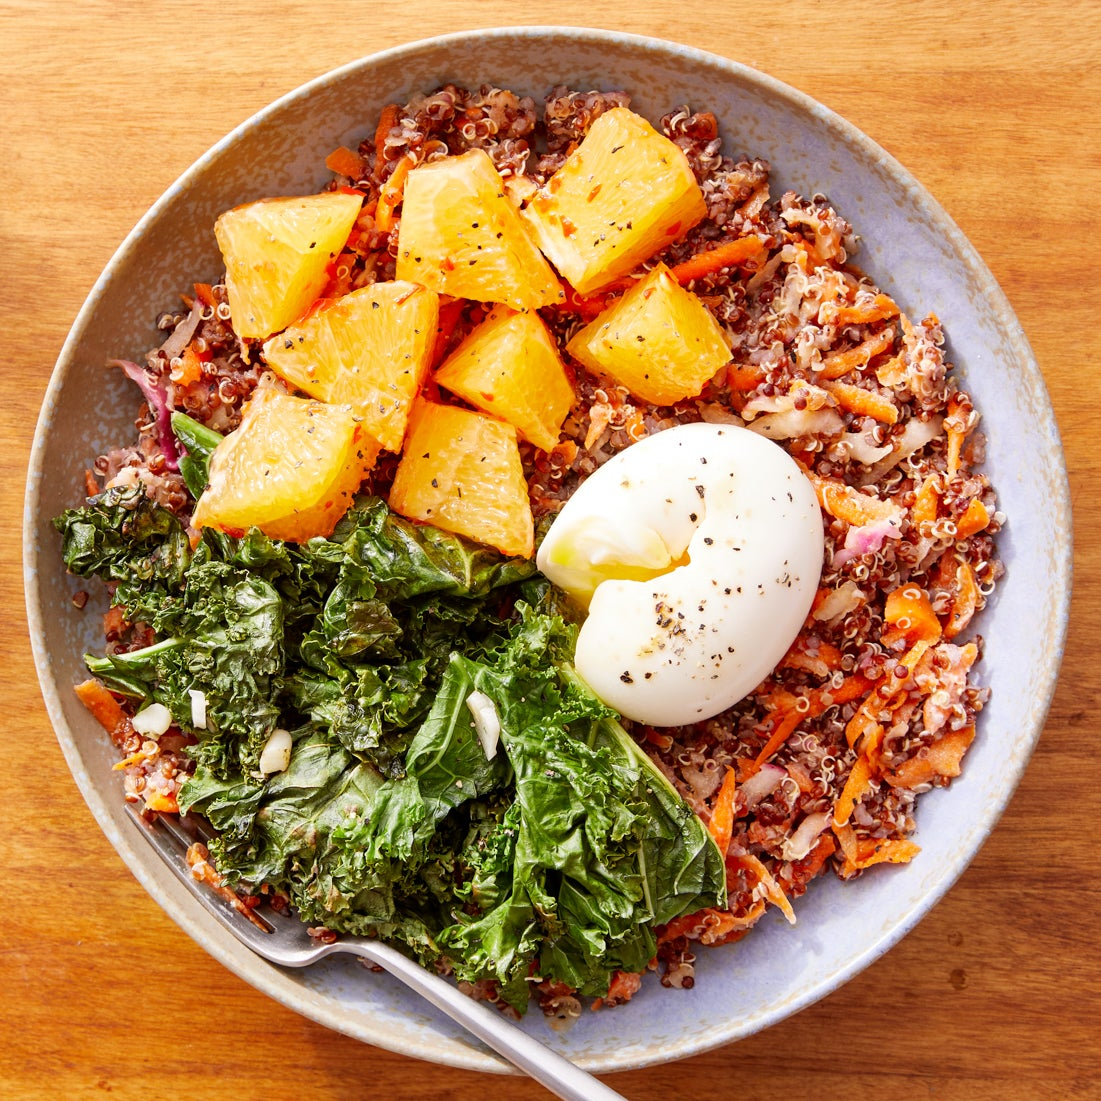 Sesame Kale & Quinoa Bowls with Marinated Vegetables & Soft-Boiled Eggs